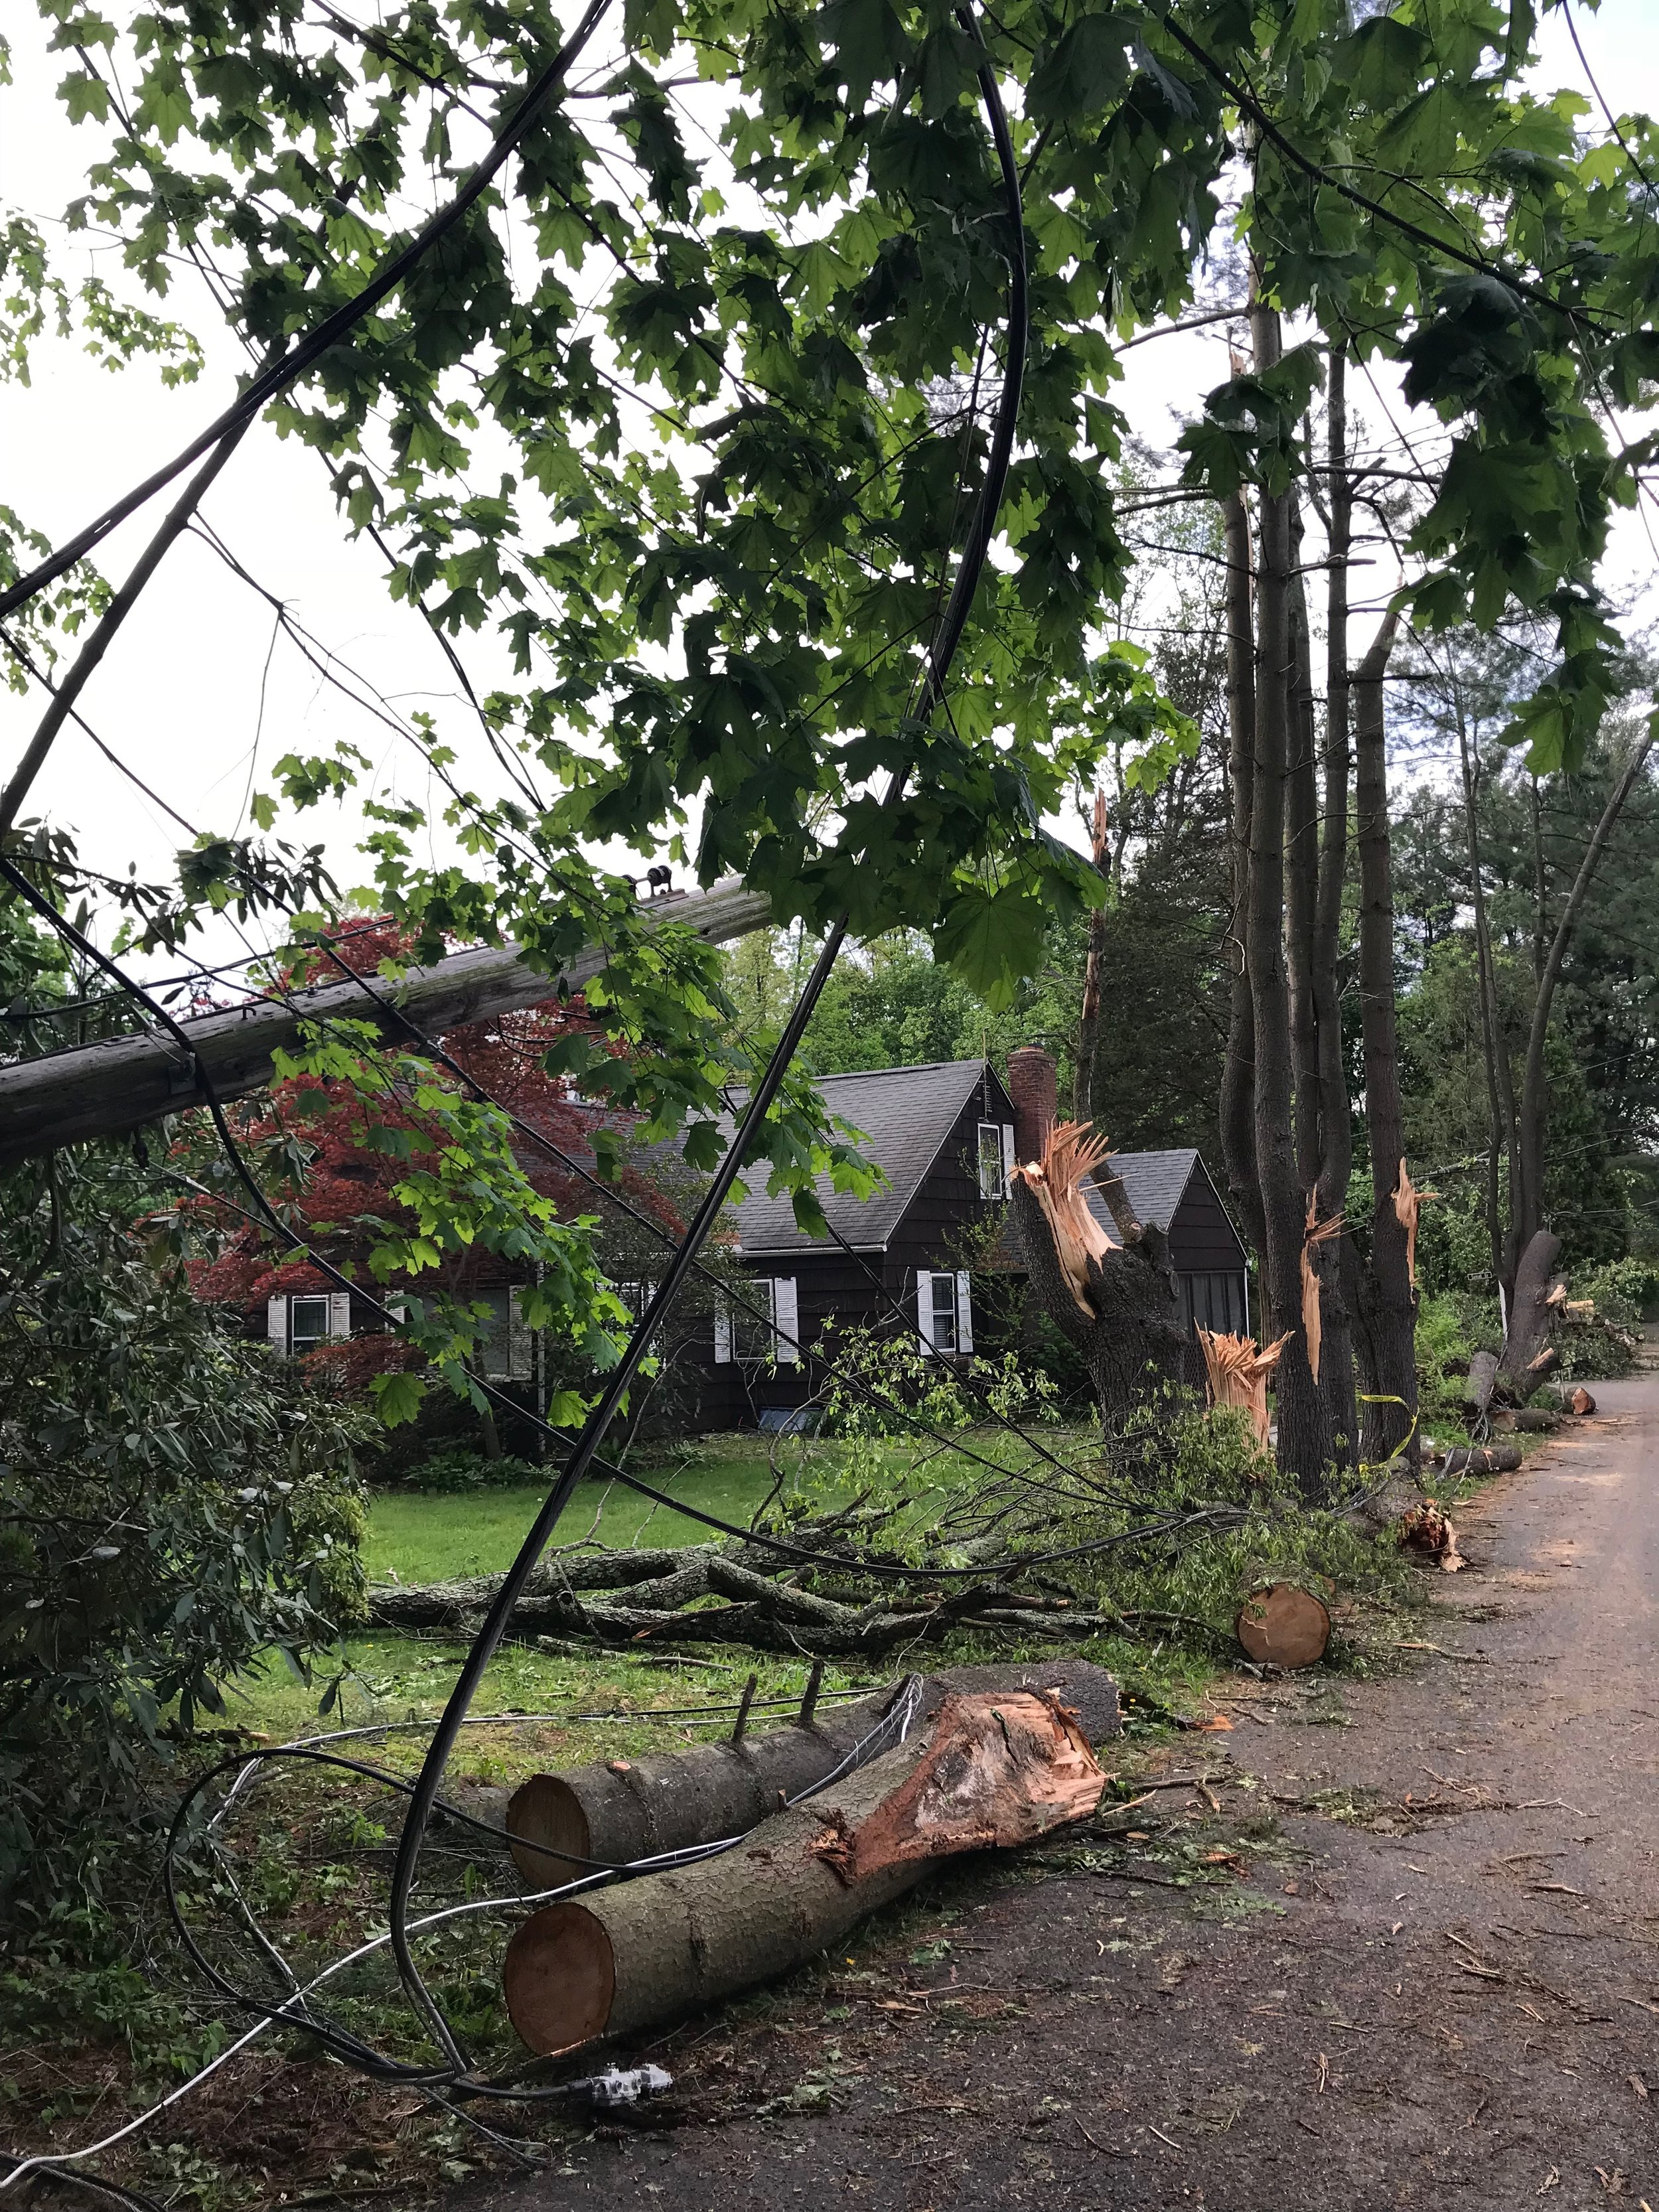 Damage in Connecticut